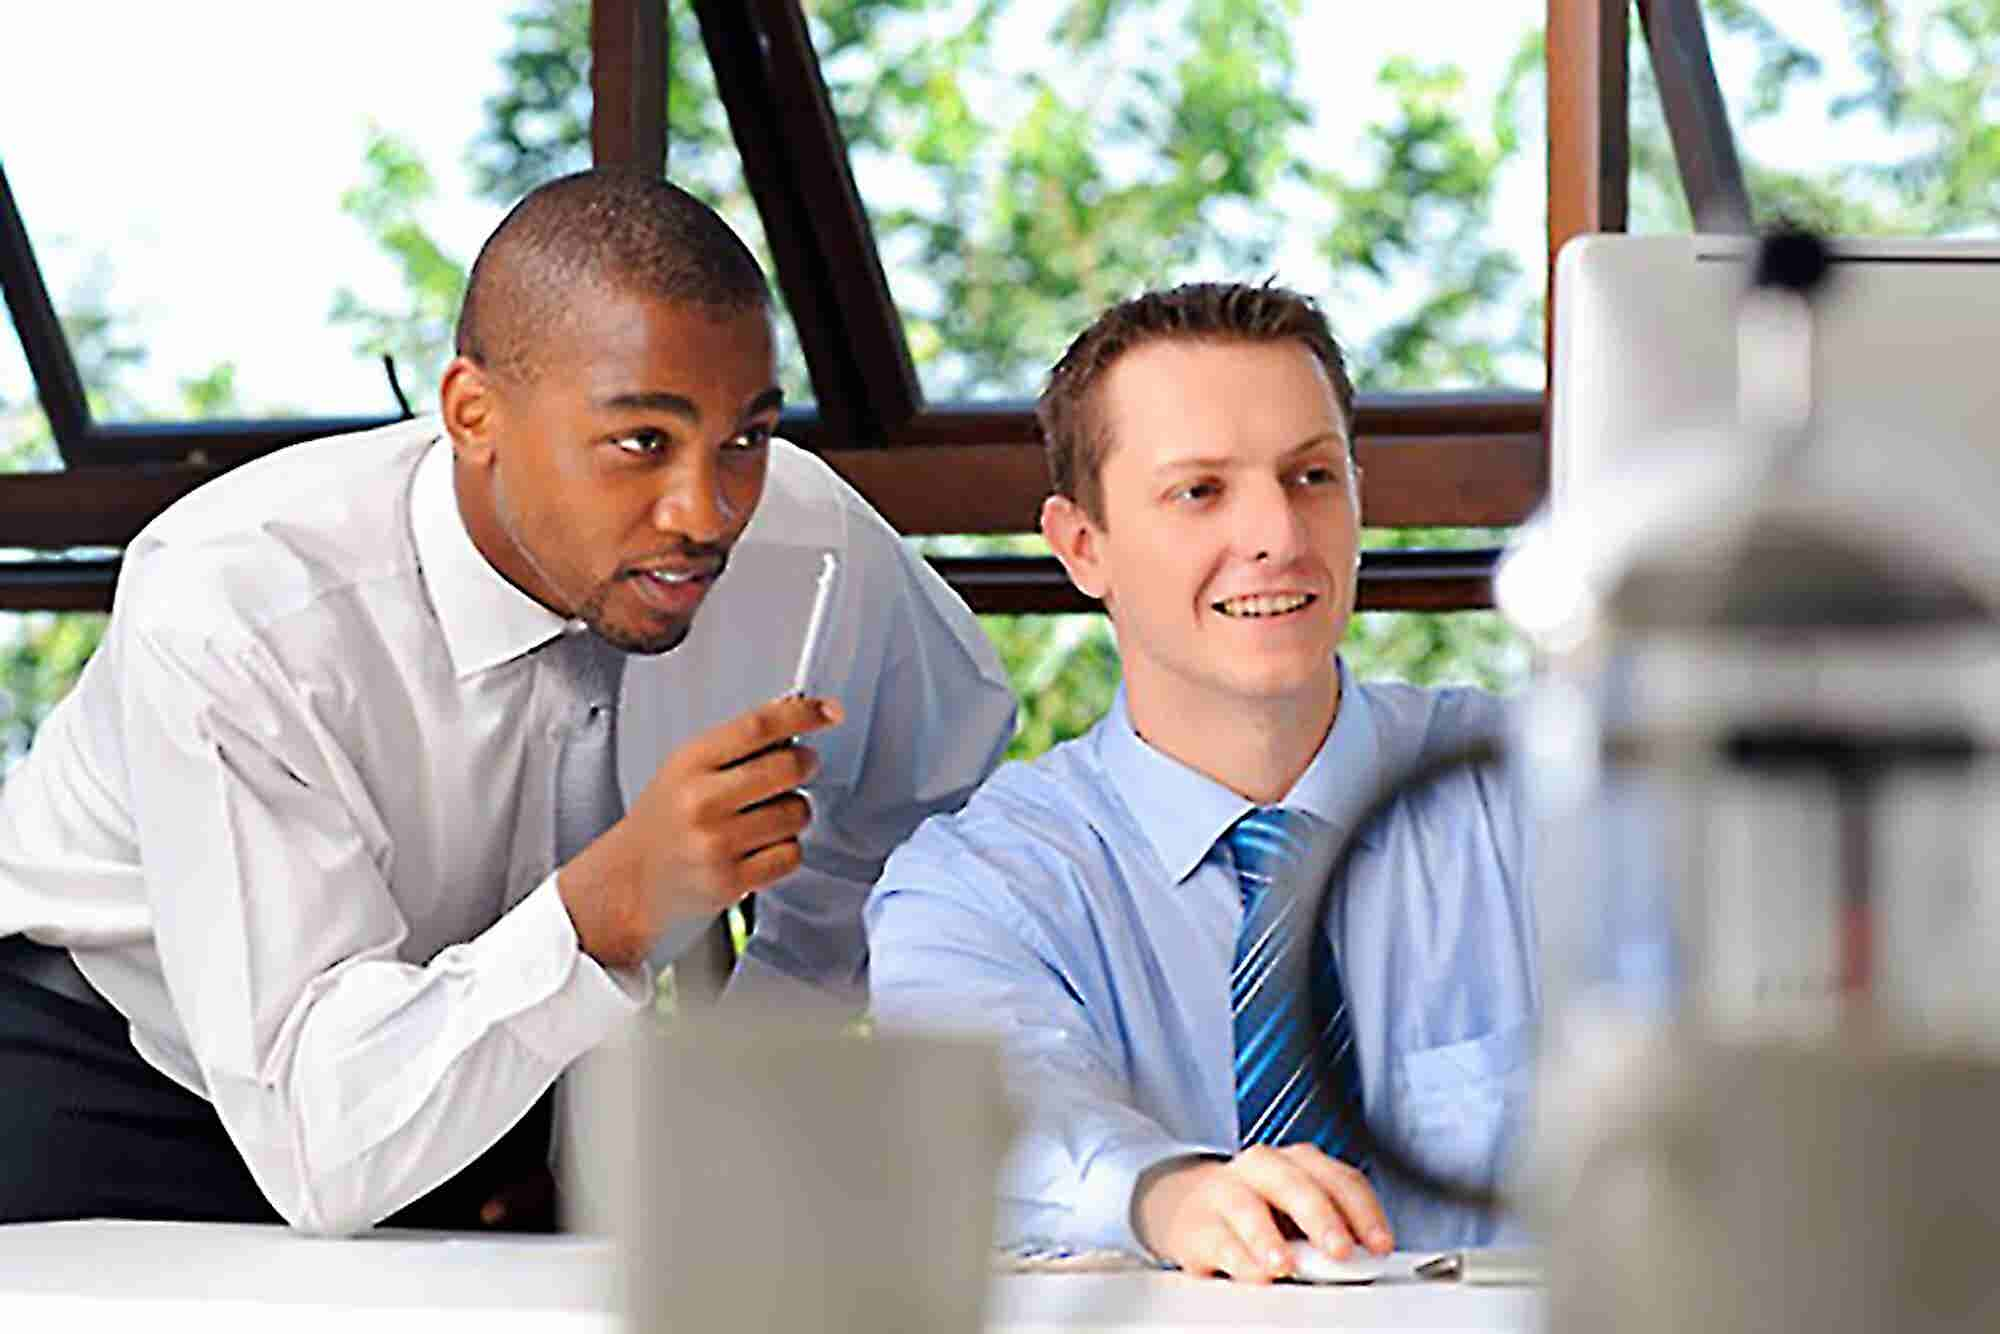 Don't Struggle Always to Be the 'Smartest Person in the Room.' Instead, Rely on a Mentor.